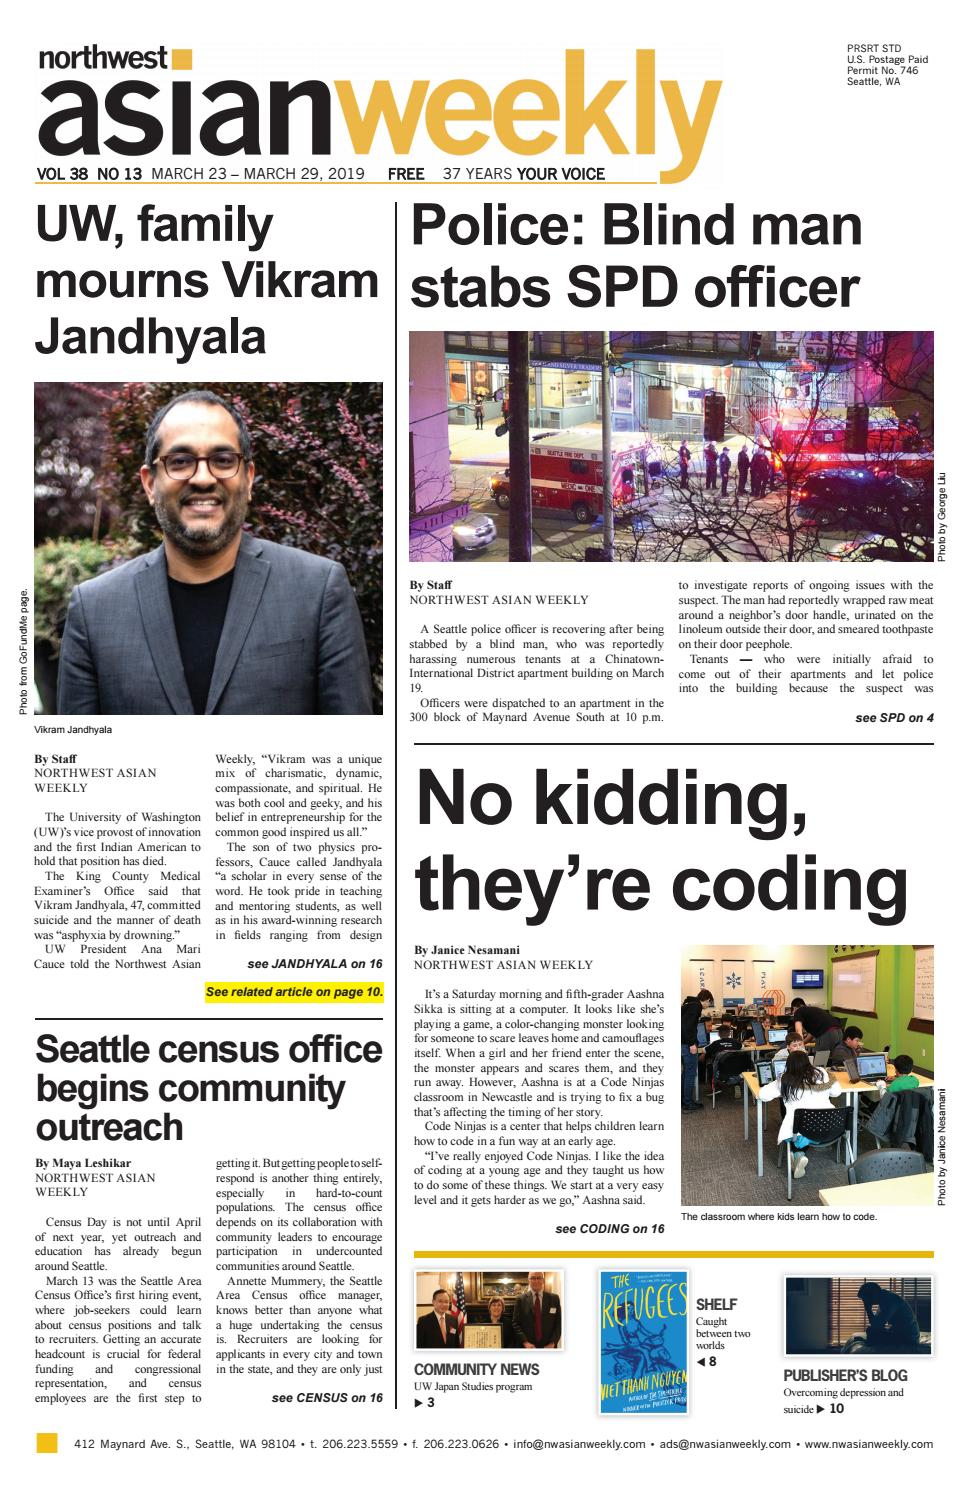 Free Talk In Maynard Monday May 4th >> Vol 38 No 13 March 23 March 29 2019 By Northwest Asian Weekly